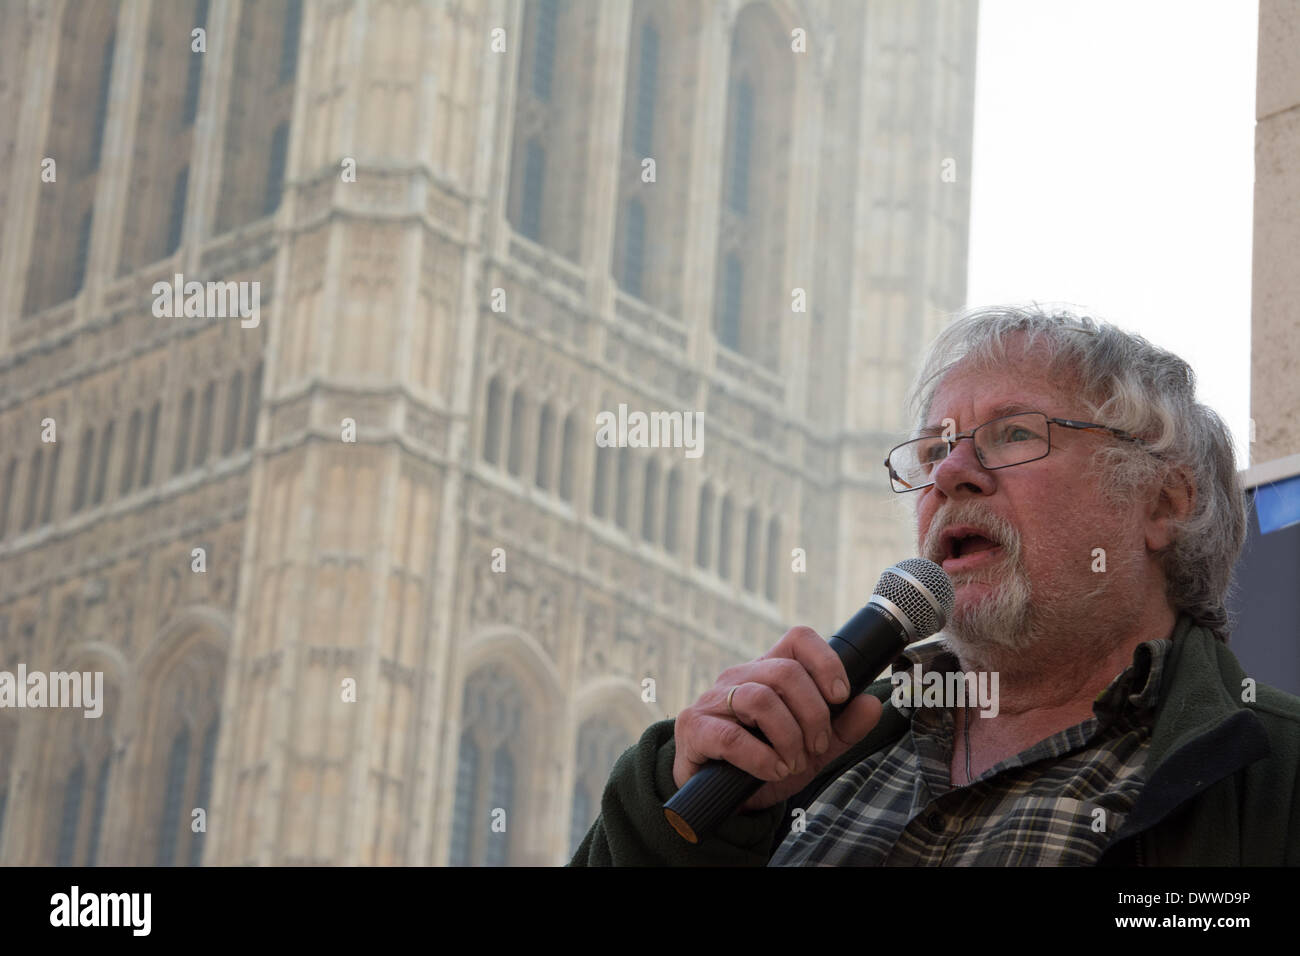 London, UK. 13th Mar, 2014. TV personality and wildlife expert Bill Oddie speaks as protesters gather outside Westminster while a parliamentary debate on the controversial badger cull takes place inside the house of commons. Badgers have been linked to the spread of bovine tuberculosis in cattle and experimental culls of badgers were carried out in 2013 in an attempt to stop the spread of the disease. Anti-cull protestors have claimed that the cull is inefficient, inhumane and scientifically flawed. Credit:  Patricia Phillips/Alamy Live News - Stock Image